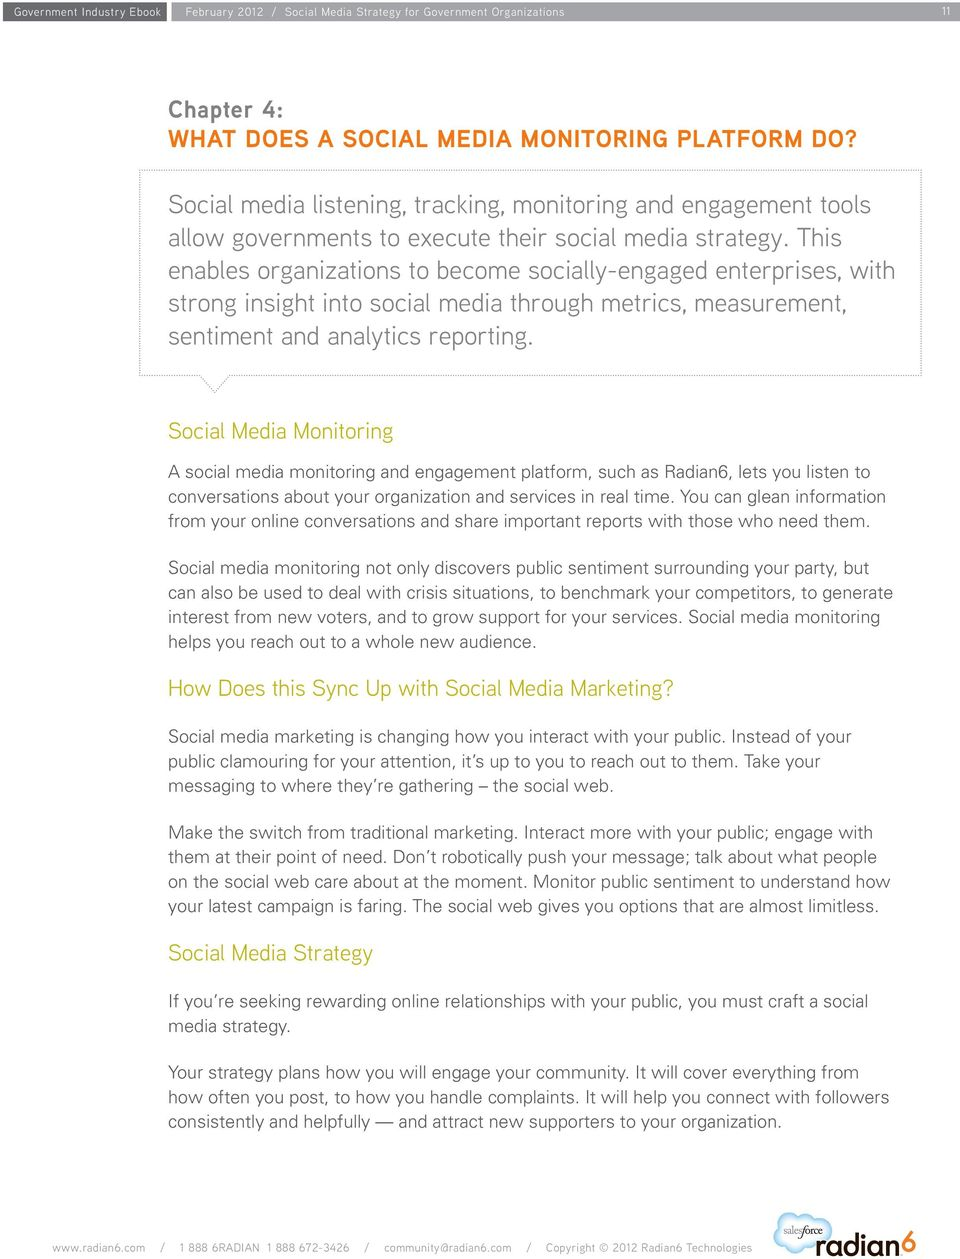 Social Media Monitoring A social media monitoring and engagement platform, such as Radian6, lets you listen to conversations about your organization and services in real time.